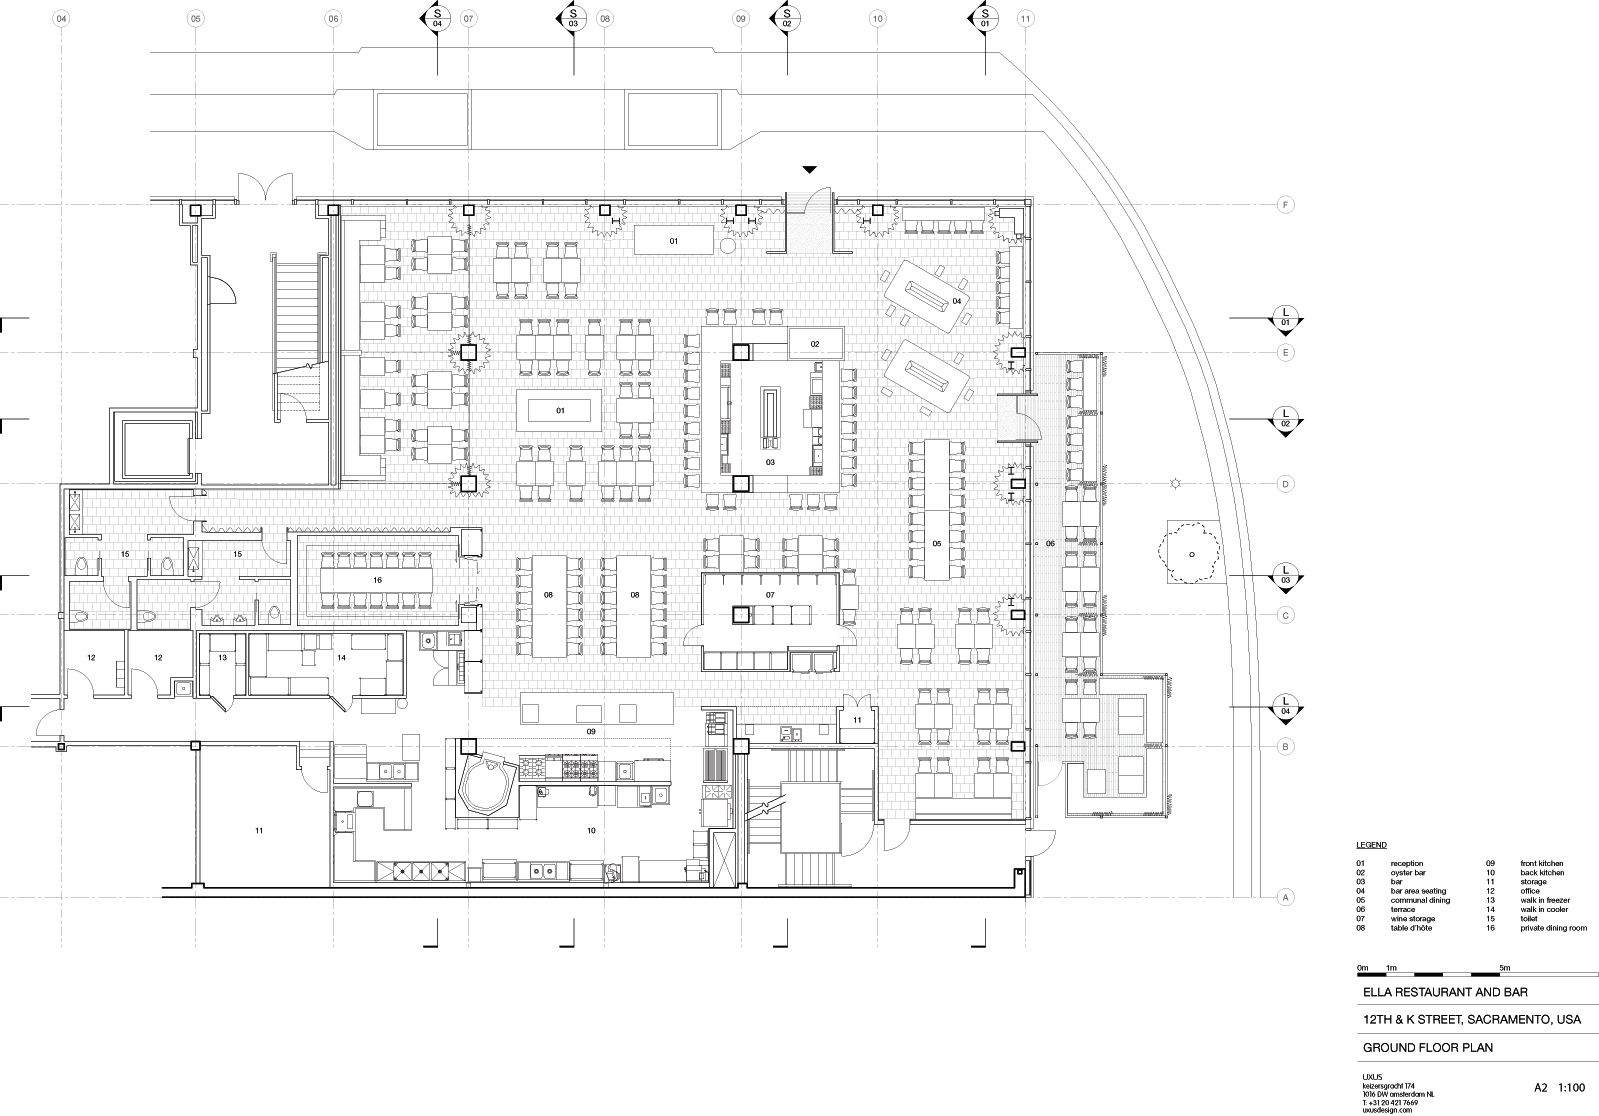 A Floor Plan Ellas Dining 03 Bar Area 04